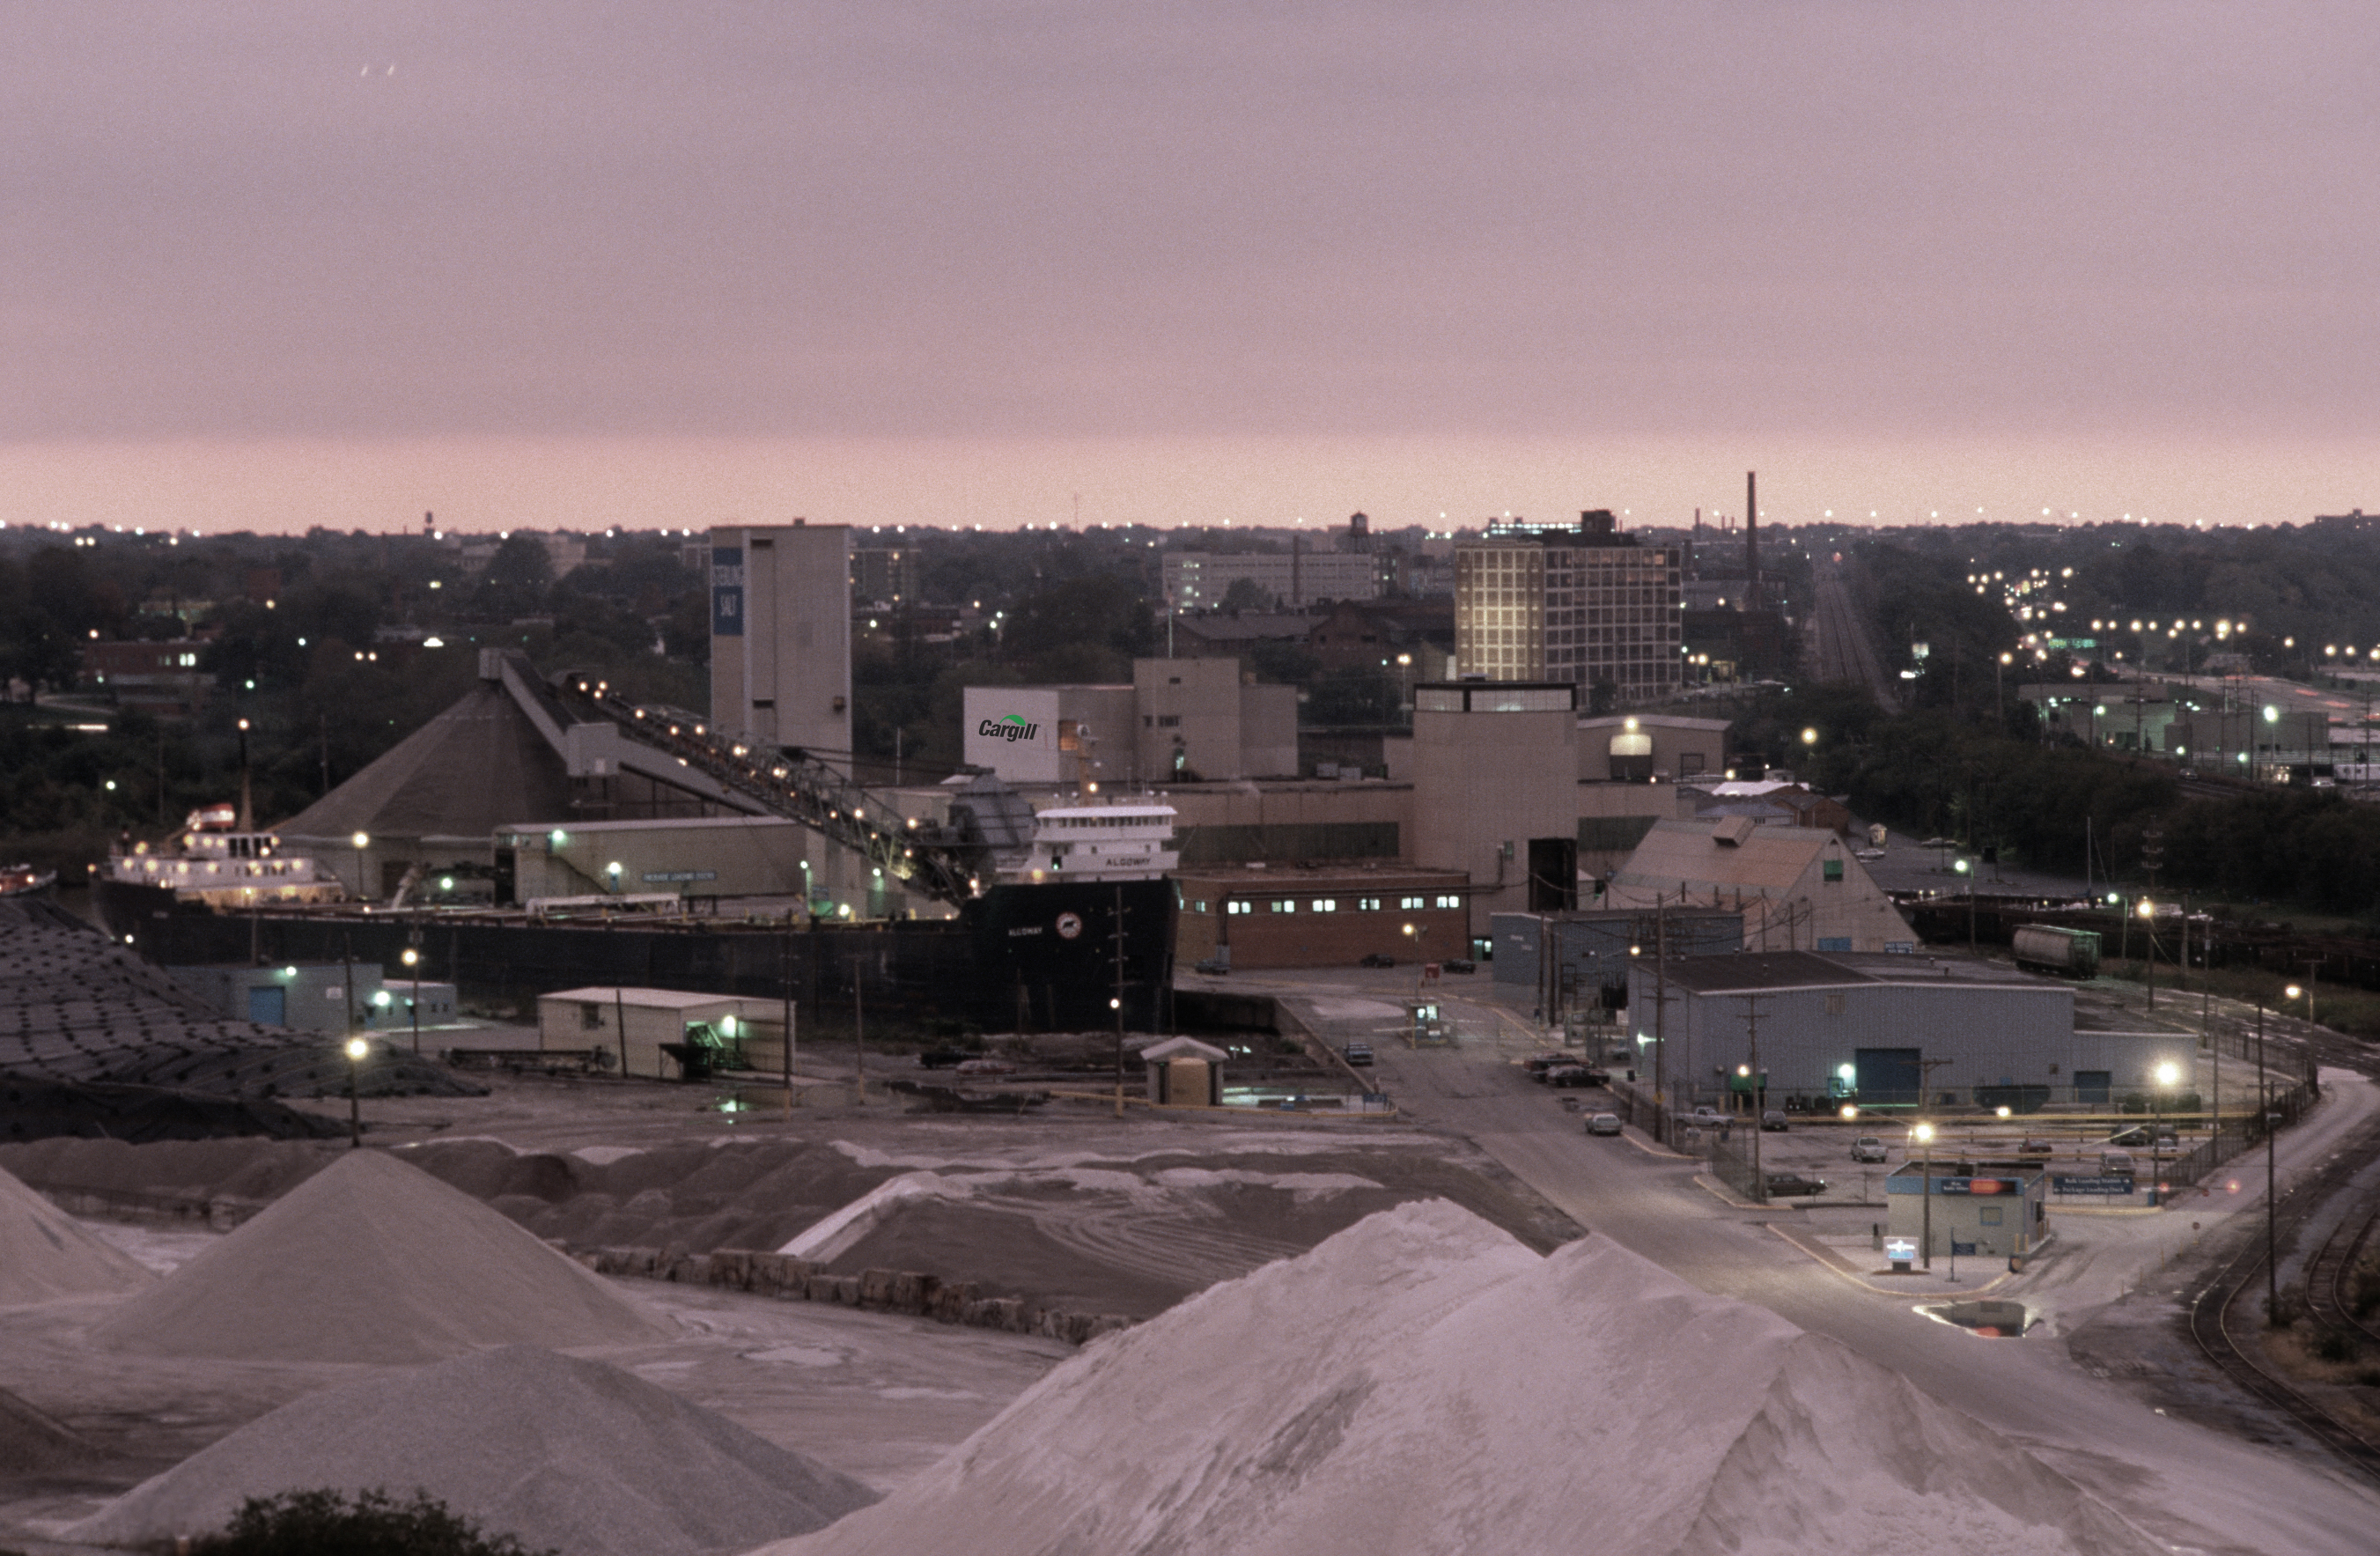 Winter Driving Safer With Salt From Clevelands Mines Executive - Lake erie salt mines